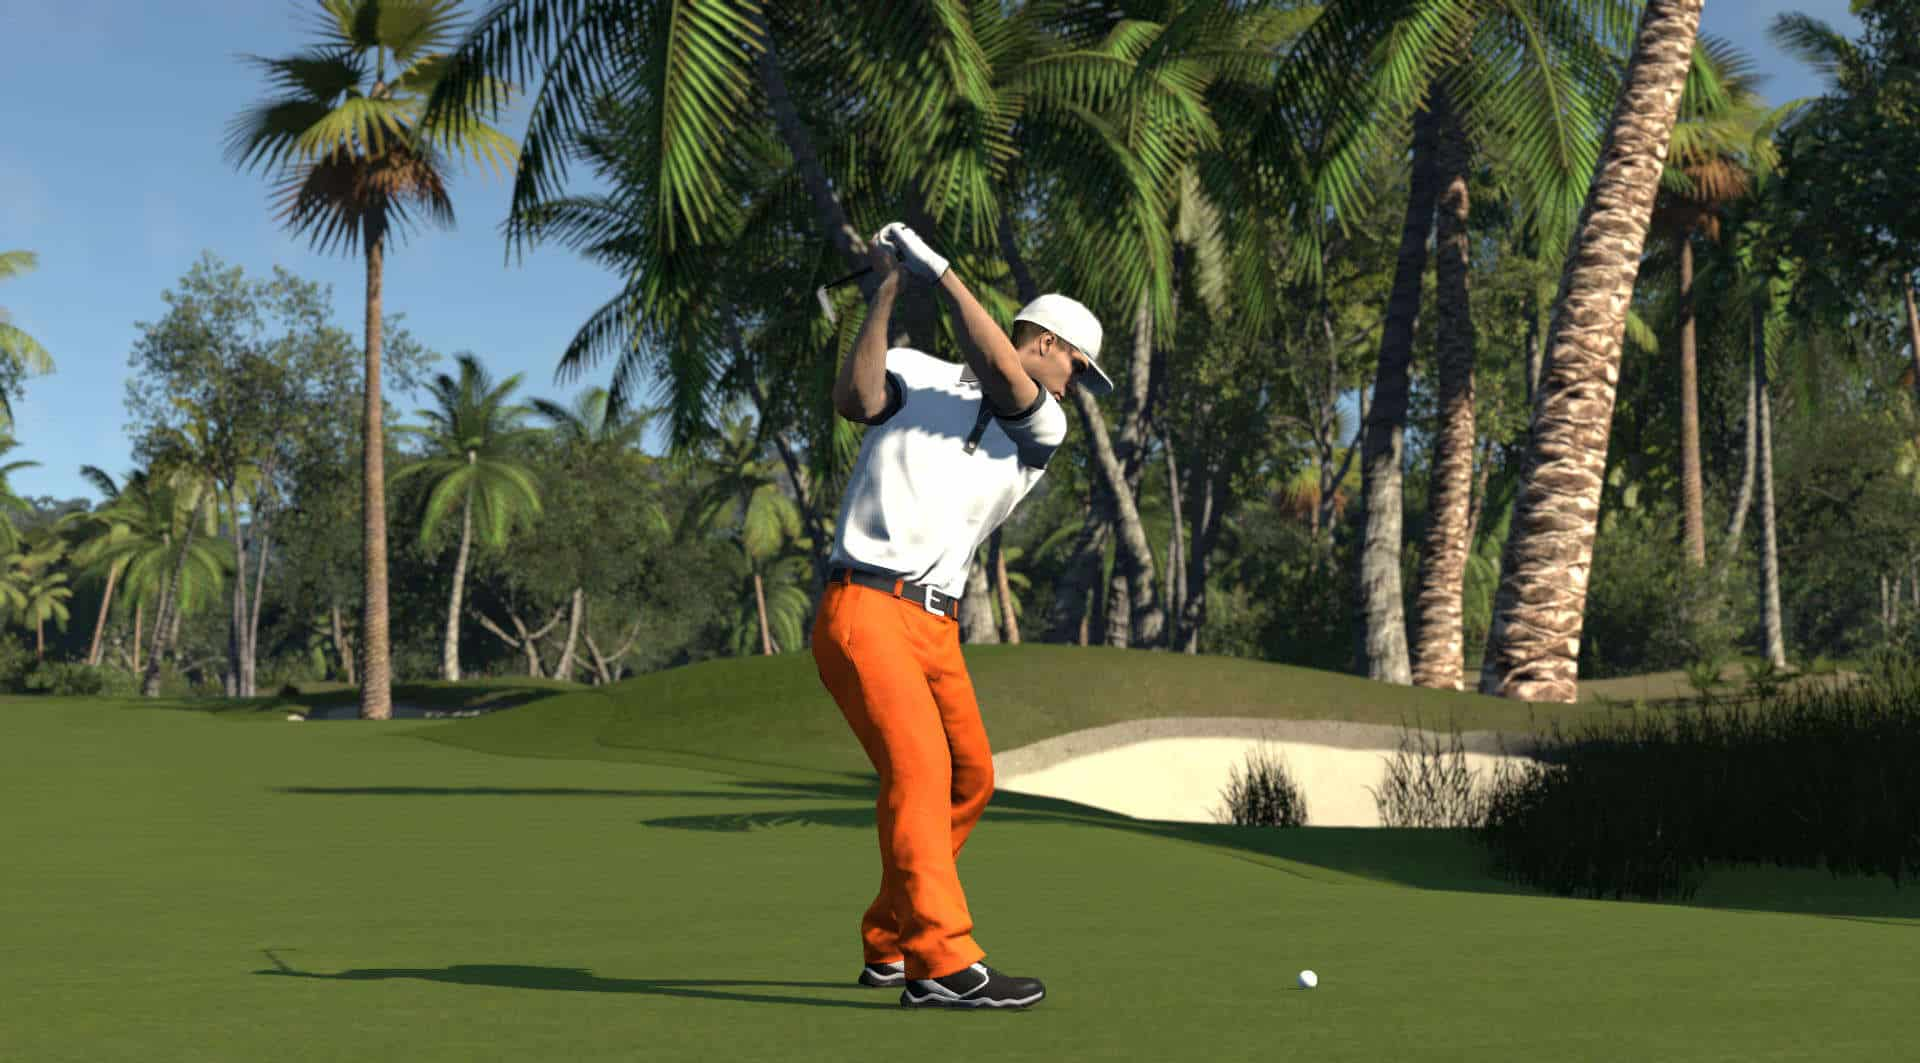 The Golf Club 2019 will feature official PGA Tour endorsement screenshot